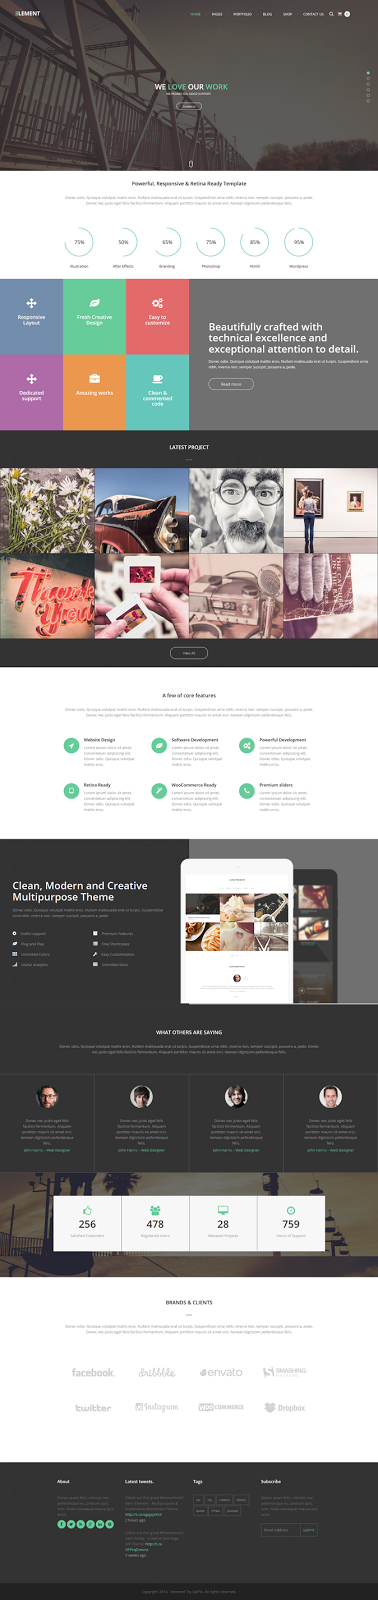 Free Responsive Multipurpose WordPress Theme